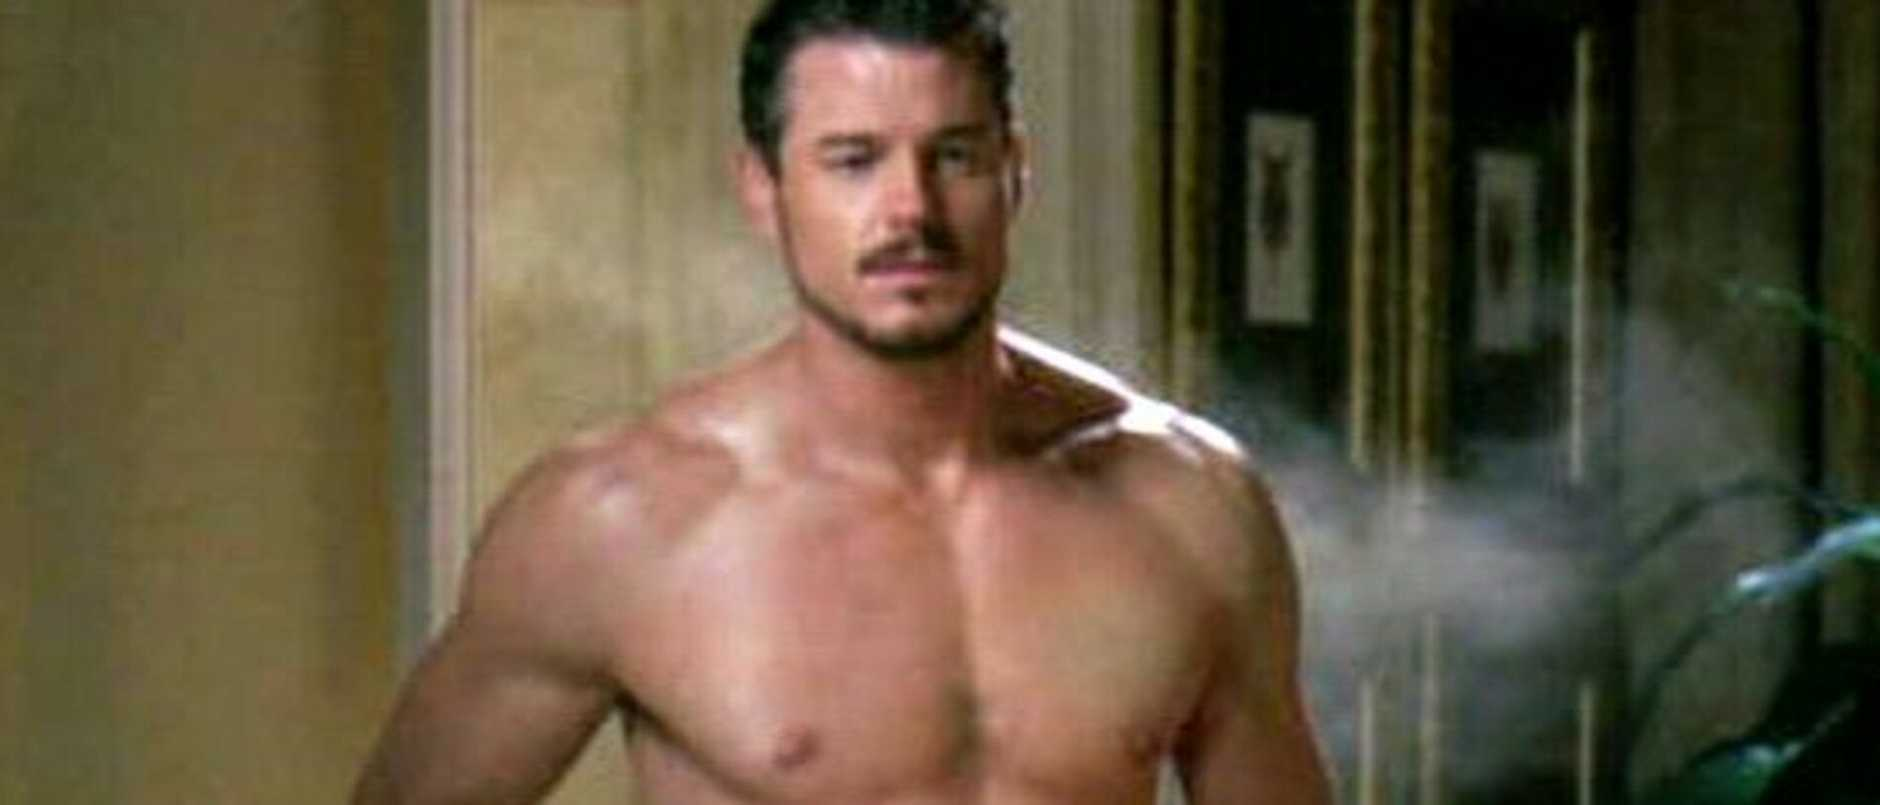 Actor Eric Dane aka McSteamy and his torso, makes their beautiful debut in episode 2 of TV show 'Ugly Betty'.